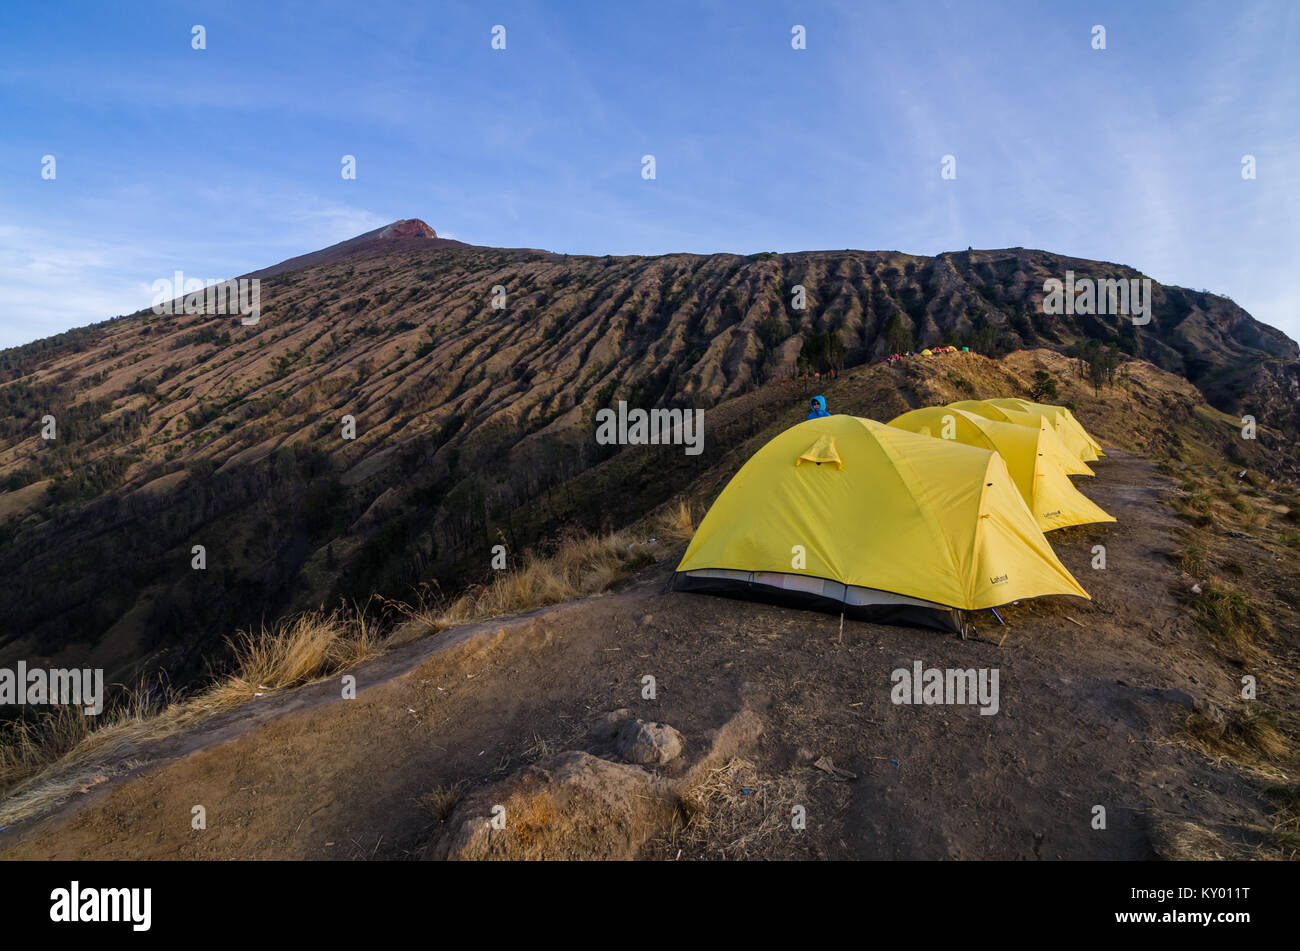 Setup tent and prepare for overnight at Mount Rinjani Base Camp. The mountain is the second highest volcano in Indonesia - Stock Image